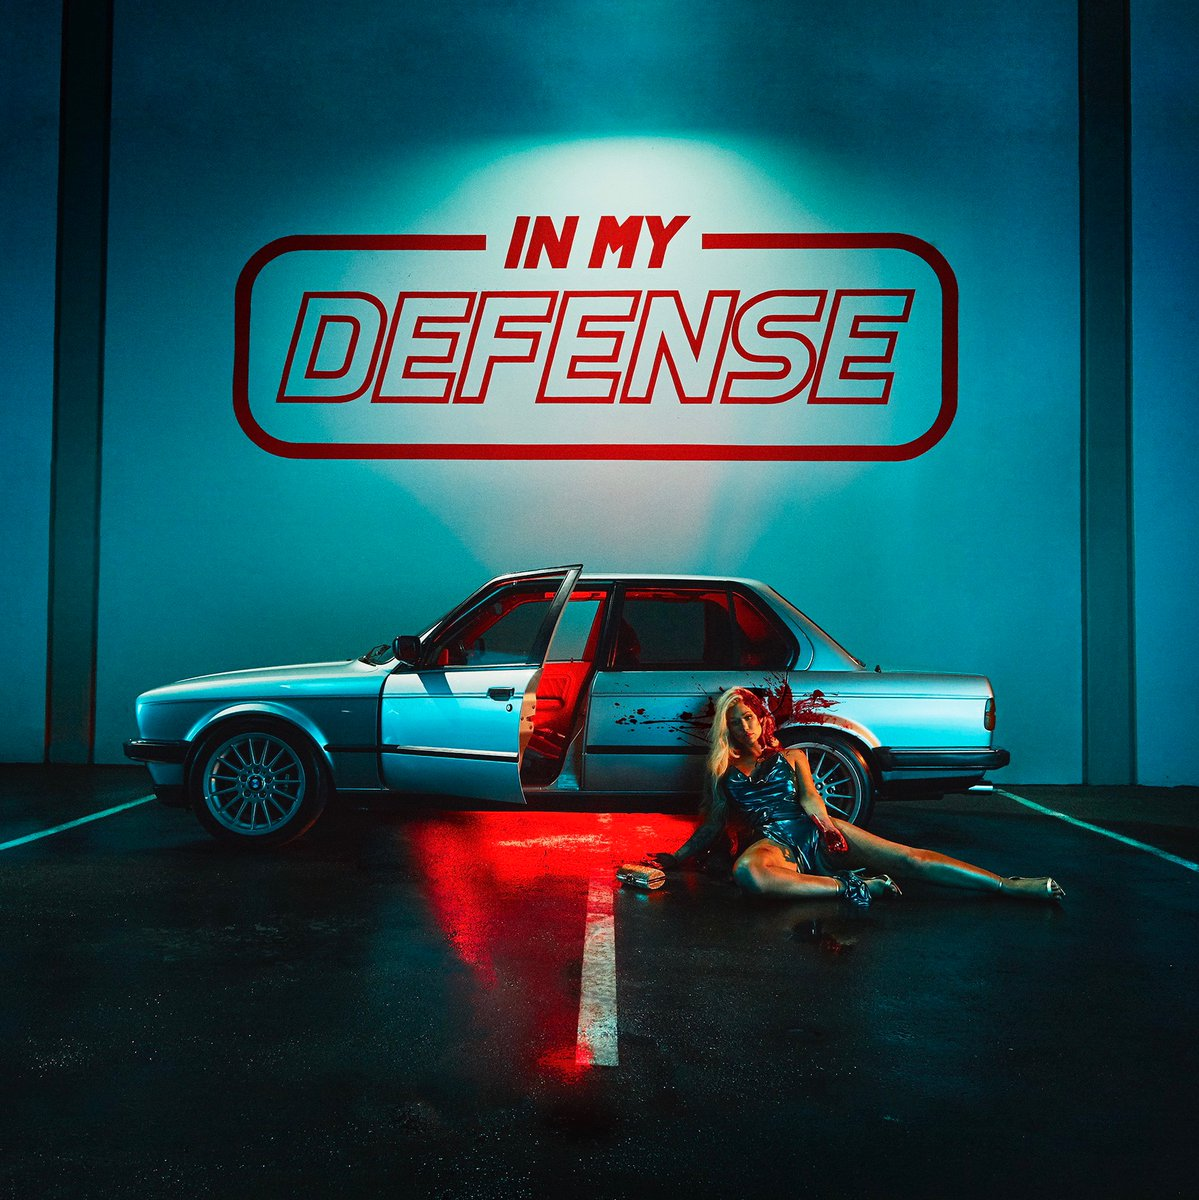 תוצאת תמונה עבור ‪iggy azalea in my defense album cover‬‏